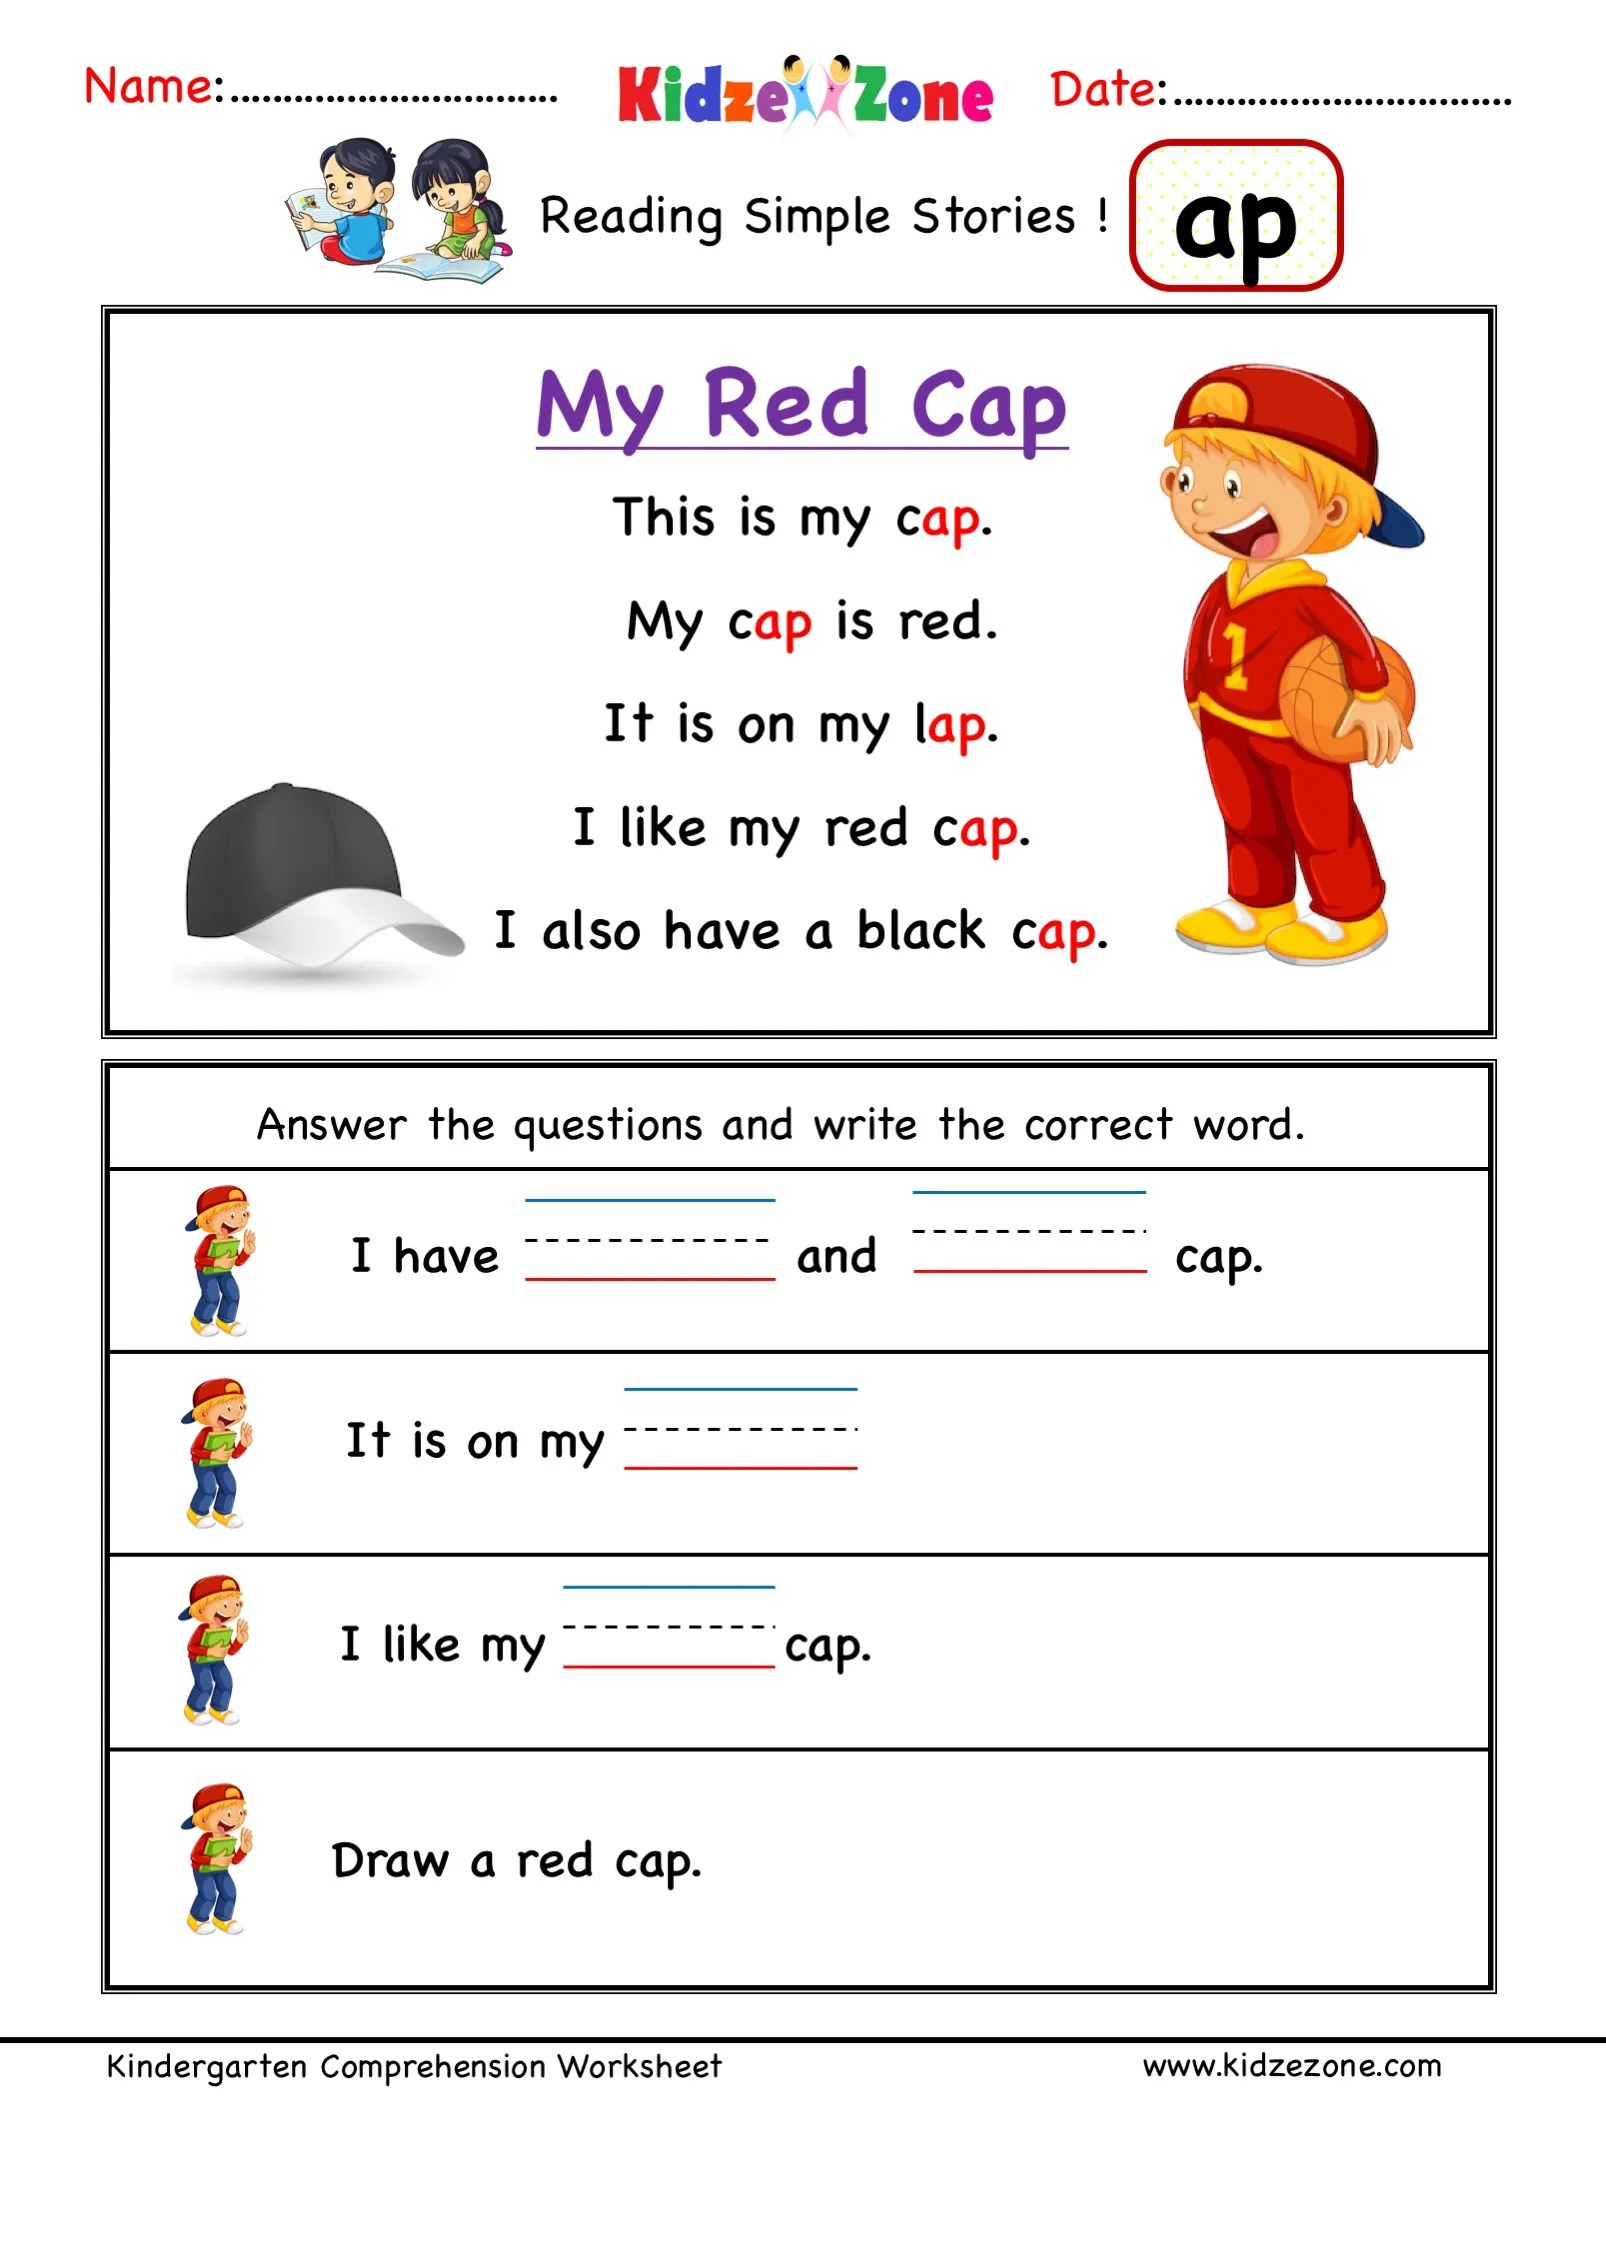 hight resolution of Kindergarten worksheets - ap word family reading Comprehension 4